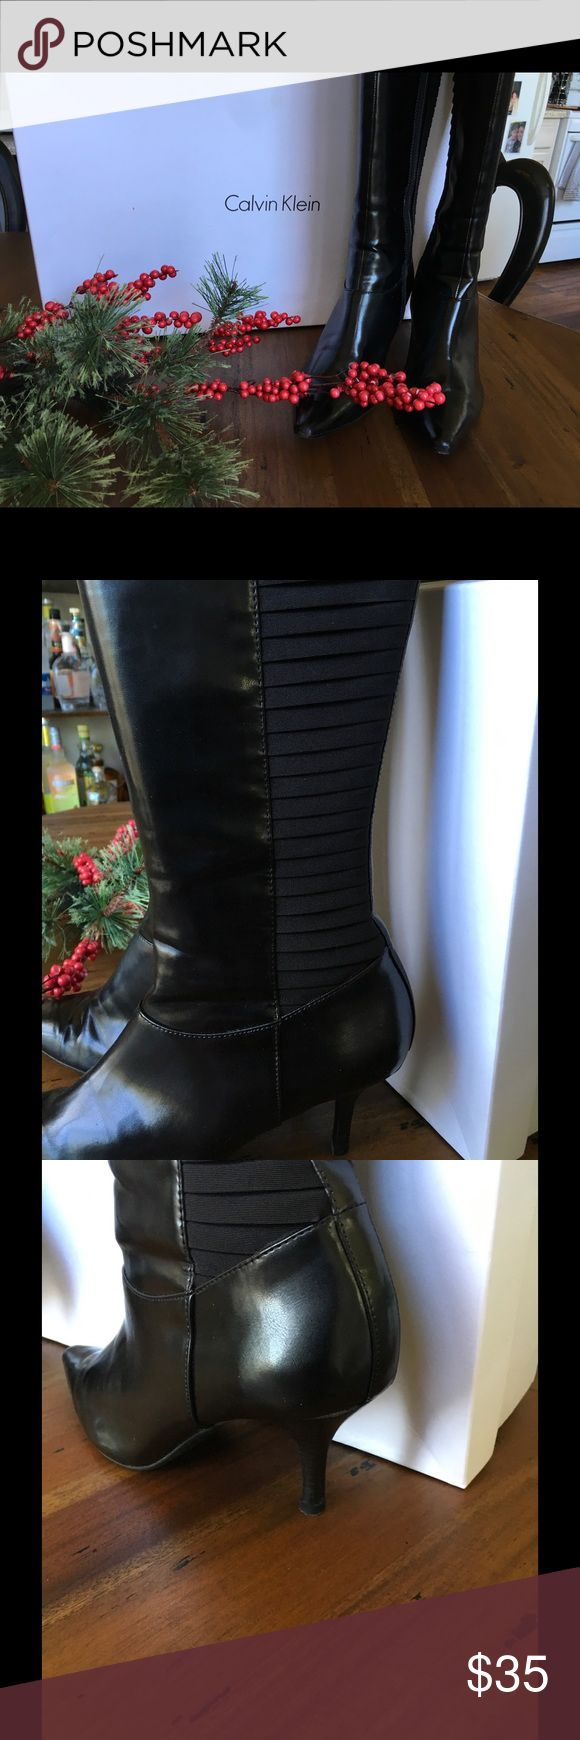 Calvin Klein Robin Stretch Boot Good condition black stretch boots with normal wear.  Man made synthetic materials. RePosh, too big. They could use a good polishing😉 Calvin Klein Shoes Heeled Boots